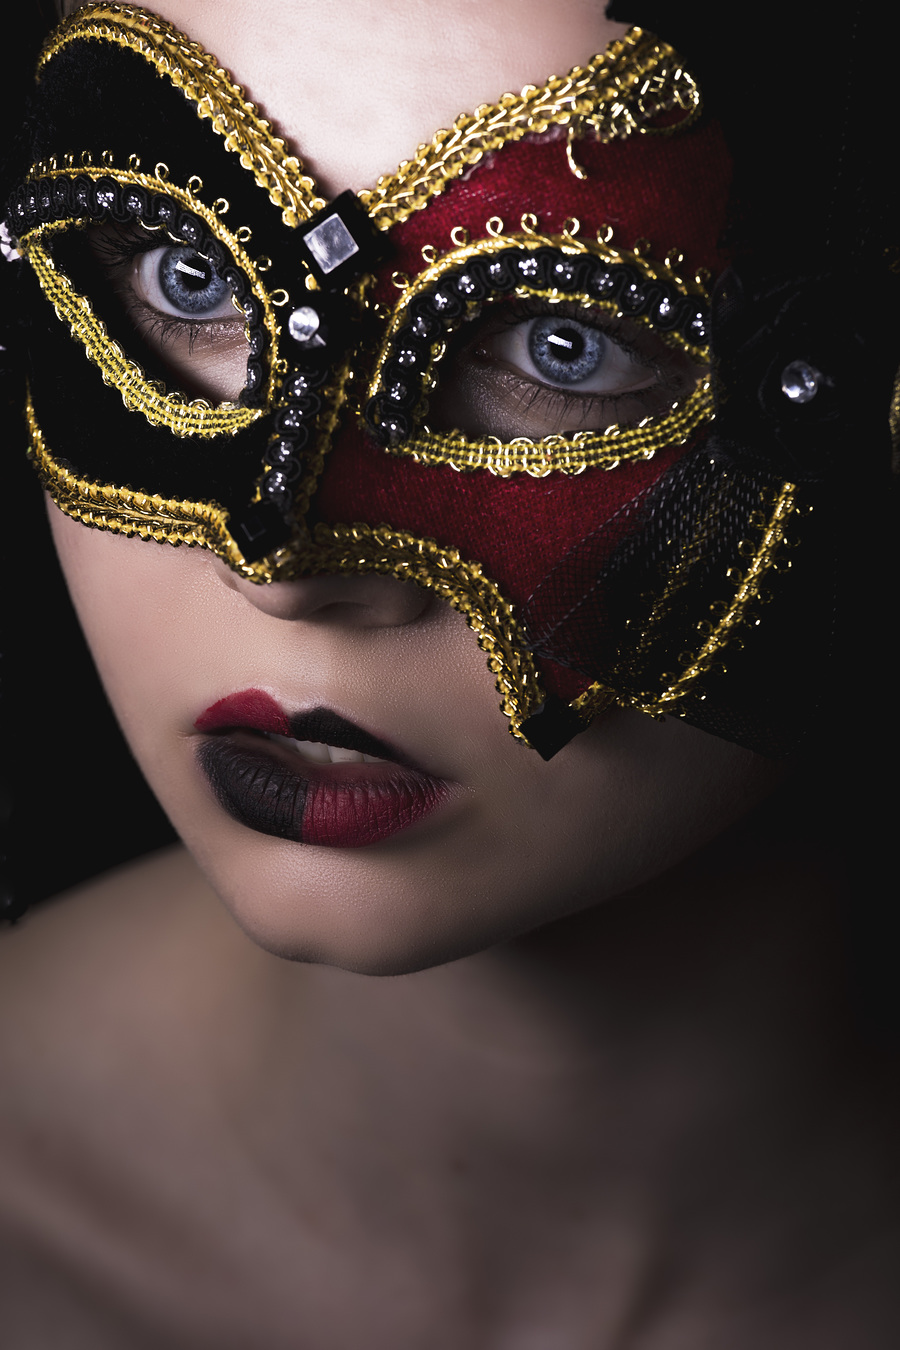 Masquerade / Photography by Chris Booey L, Model Grace A, Makeup by Grace A, Post processing by Chris Booey L, Taken at Chris Booey L / Uploaded 1st May 2017 @ 03:06 PM